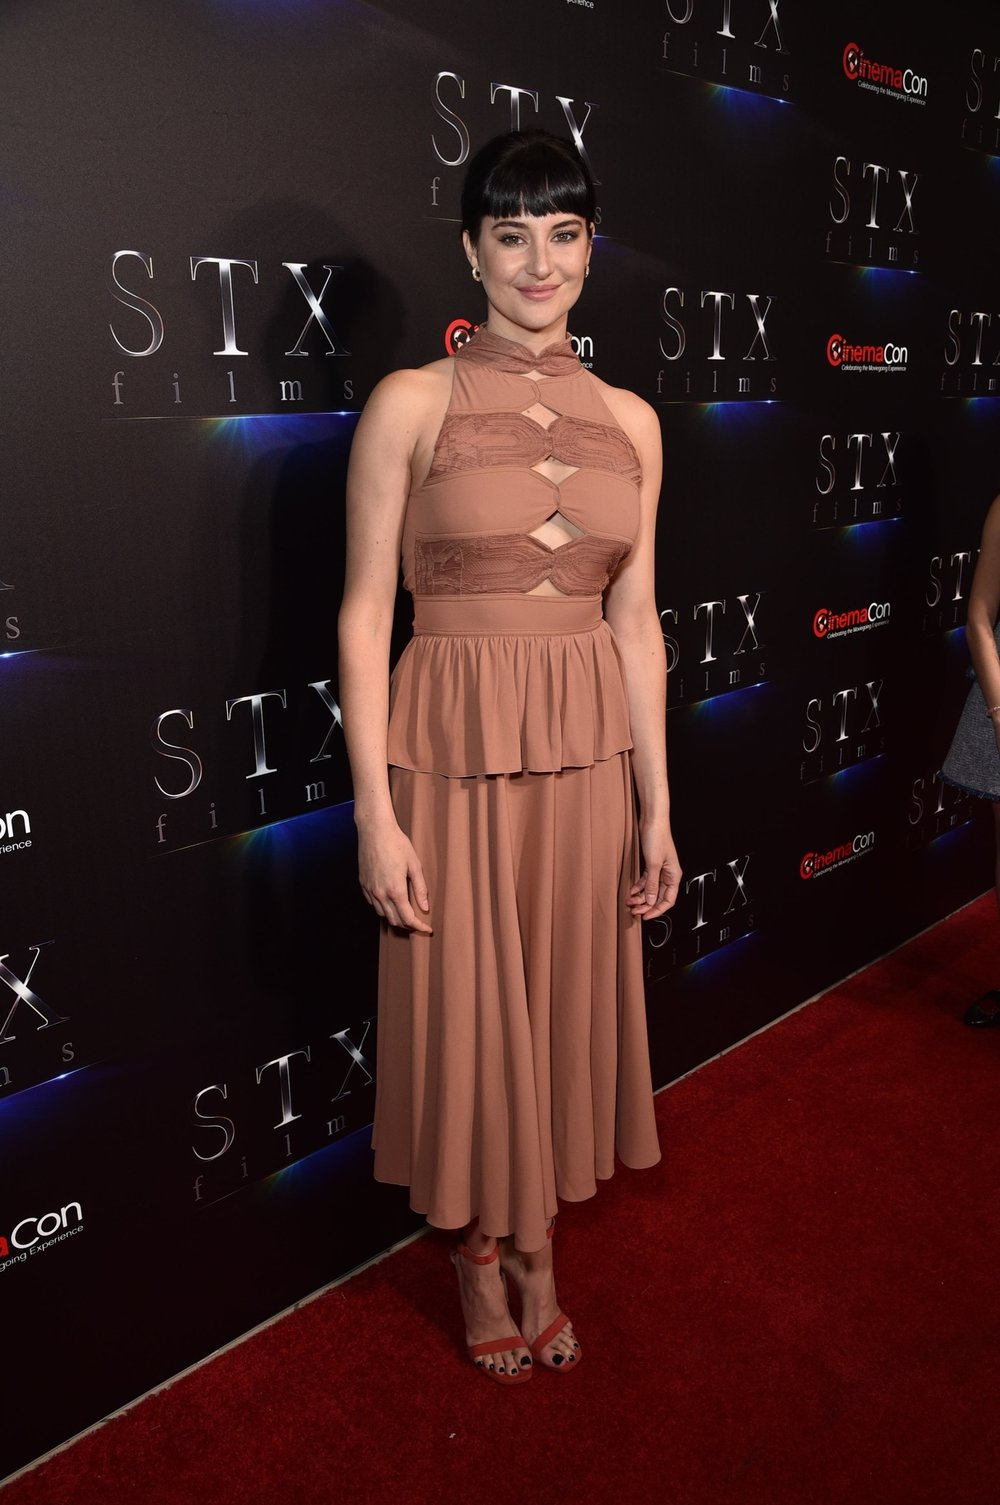 Shailene Woodley attends STXfilms' 2018 CinemaCon Presentation at The Colosseum of Caesars Palace, Las Vegas, NV Tuesday, April 24, 2018.